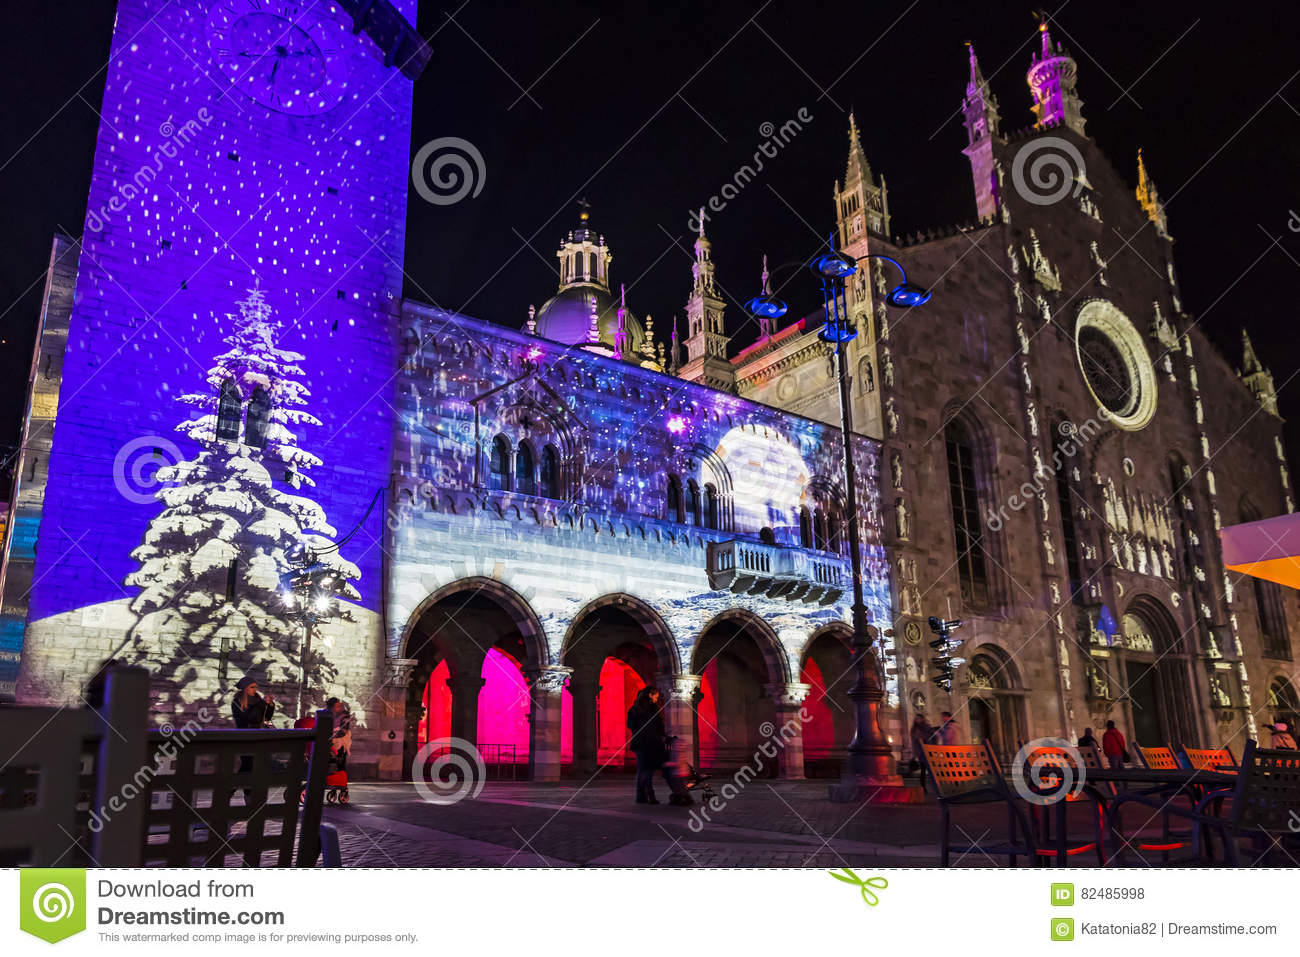 Festive Christmas decorations on facades of buildings in Como, I